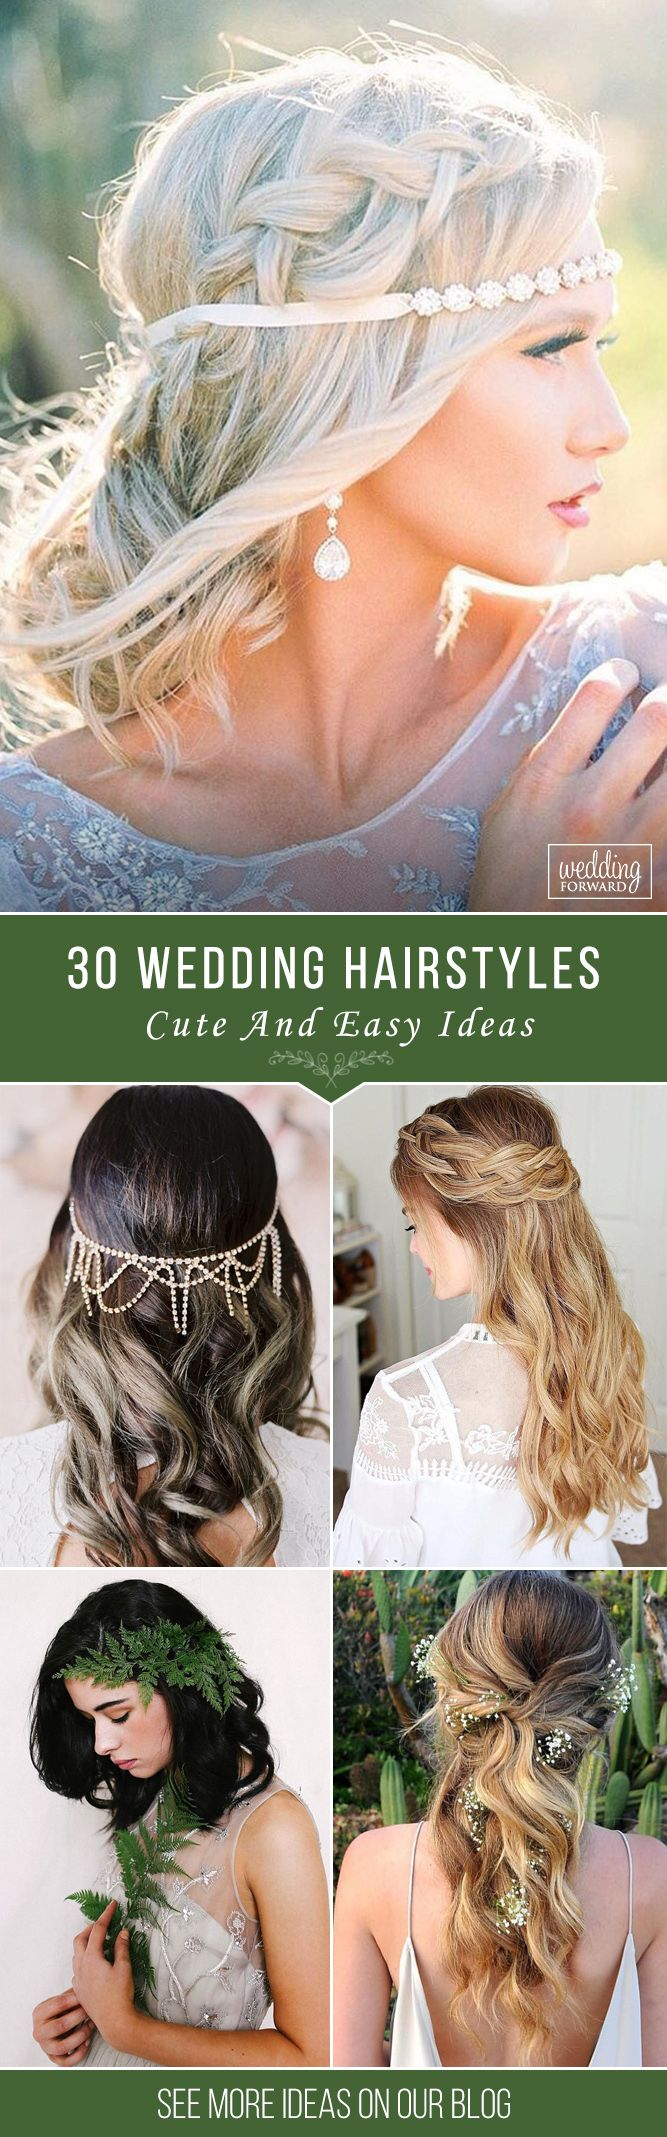 30 Cute And Easy Wedding Hairstyles  ❤ We propose our collection of easy weddi...